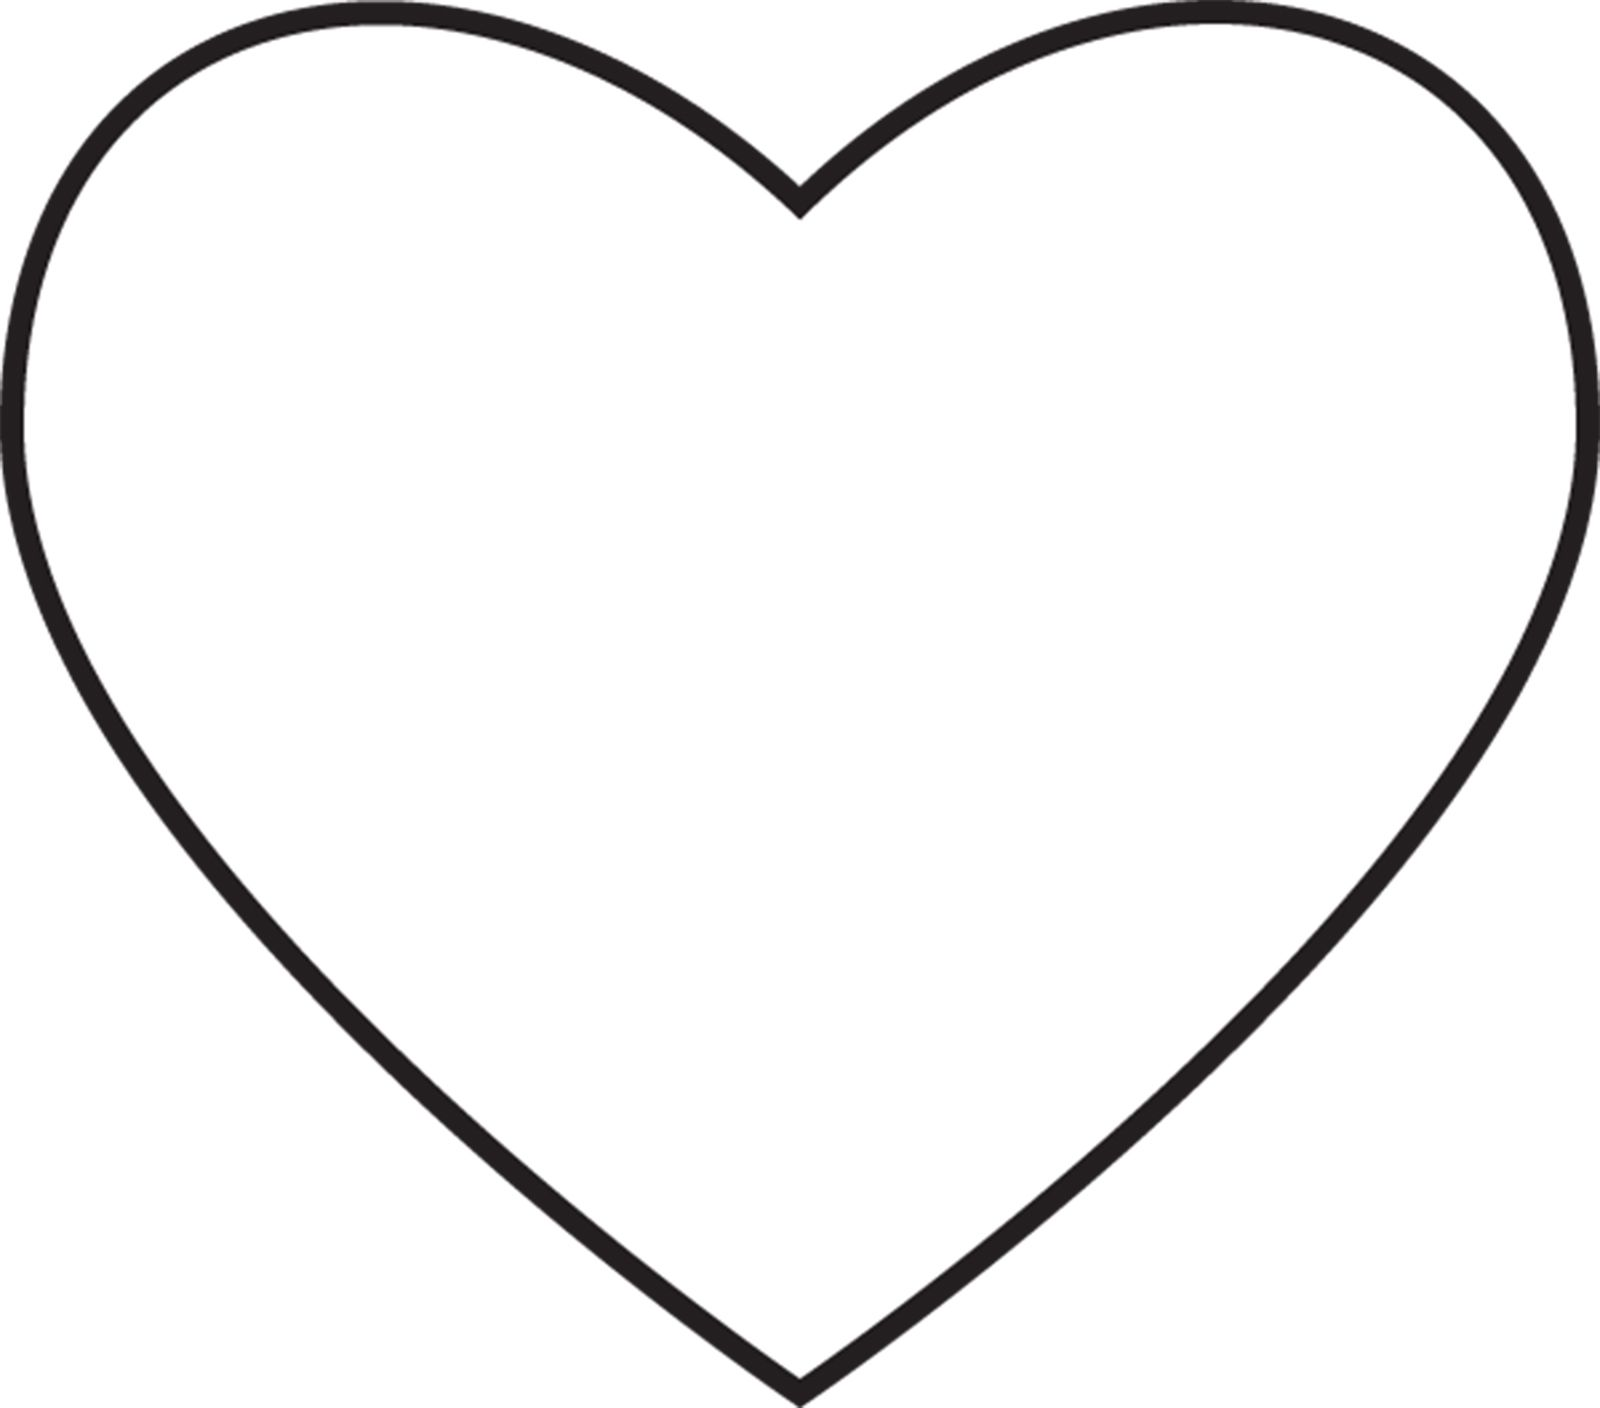 Sharing Time Heart Coloring Page Lds Ldsprimary Primary Heart Coloring Pages Shape Coloring Pages Valentines Day Coloring Page